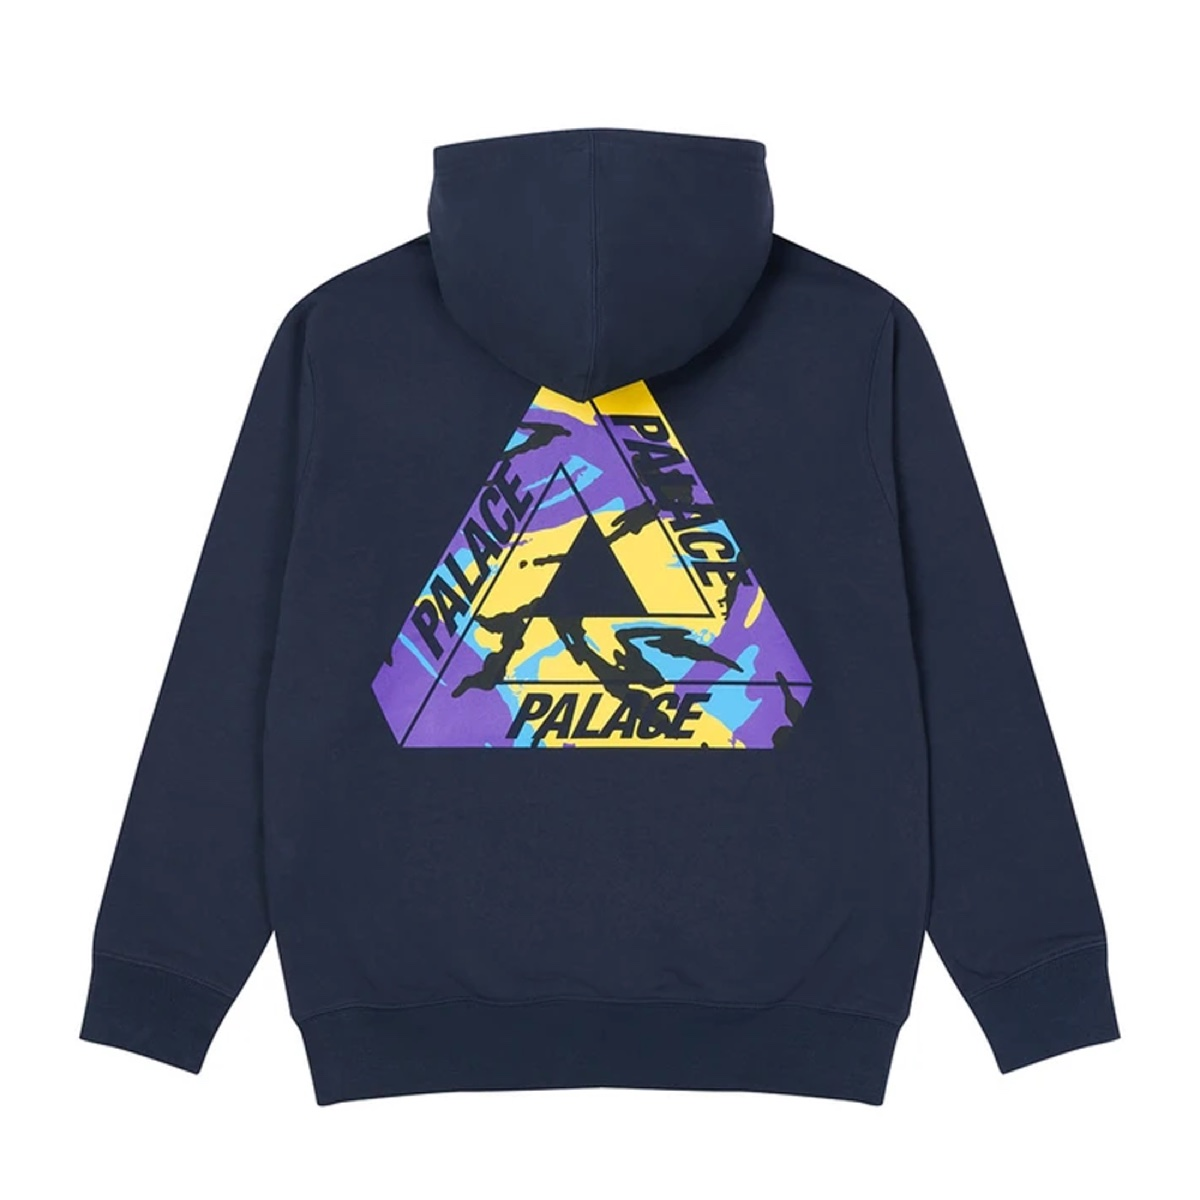 Palace Tri Camo Hood This Lockdown Navy